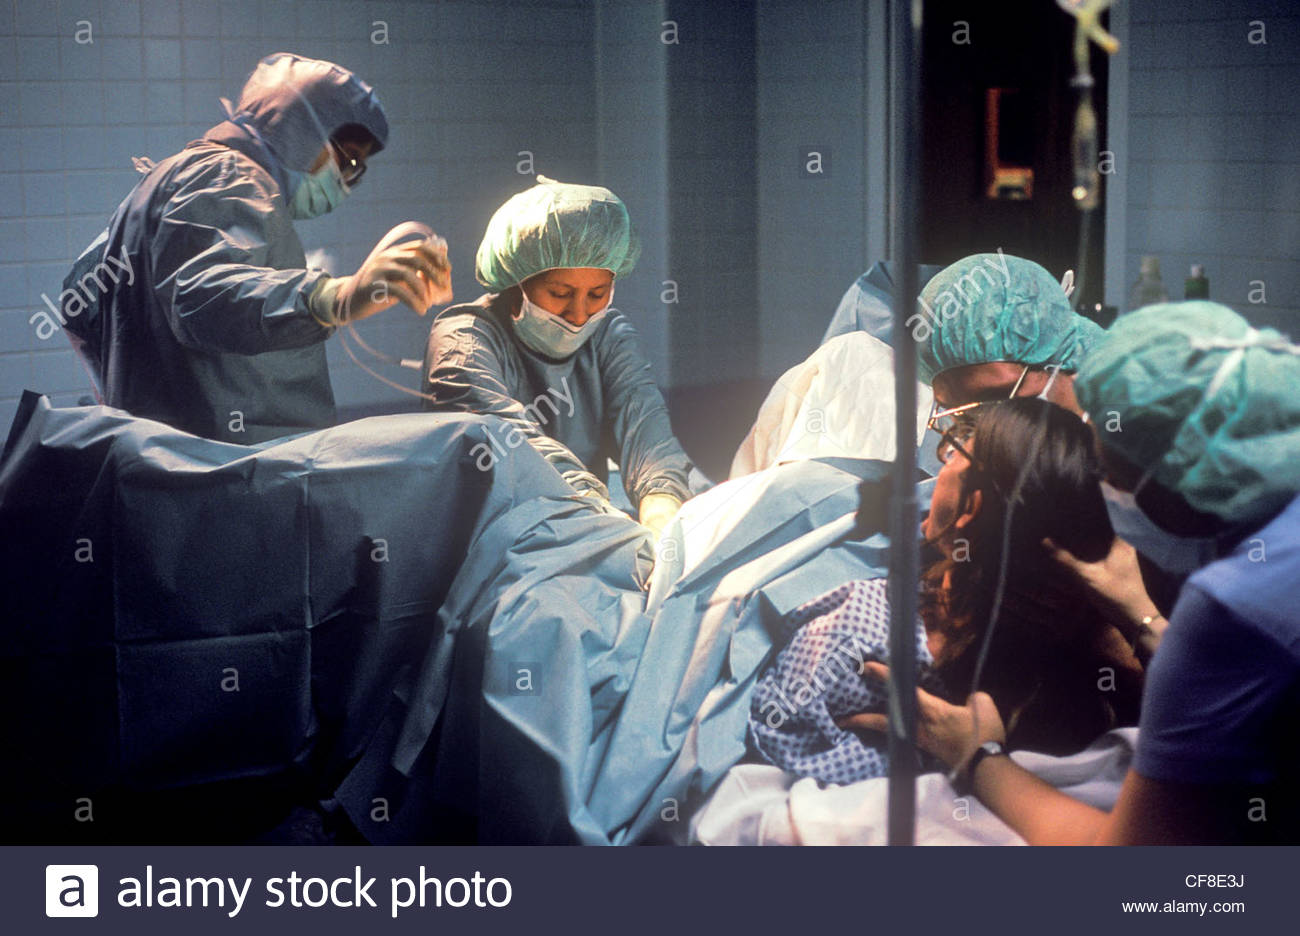 The birth of a baby in a hospital delivery room. - Stock Image